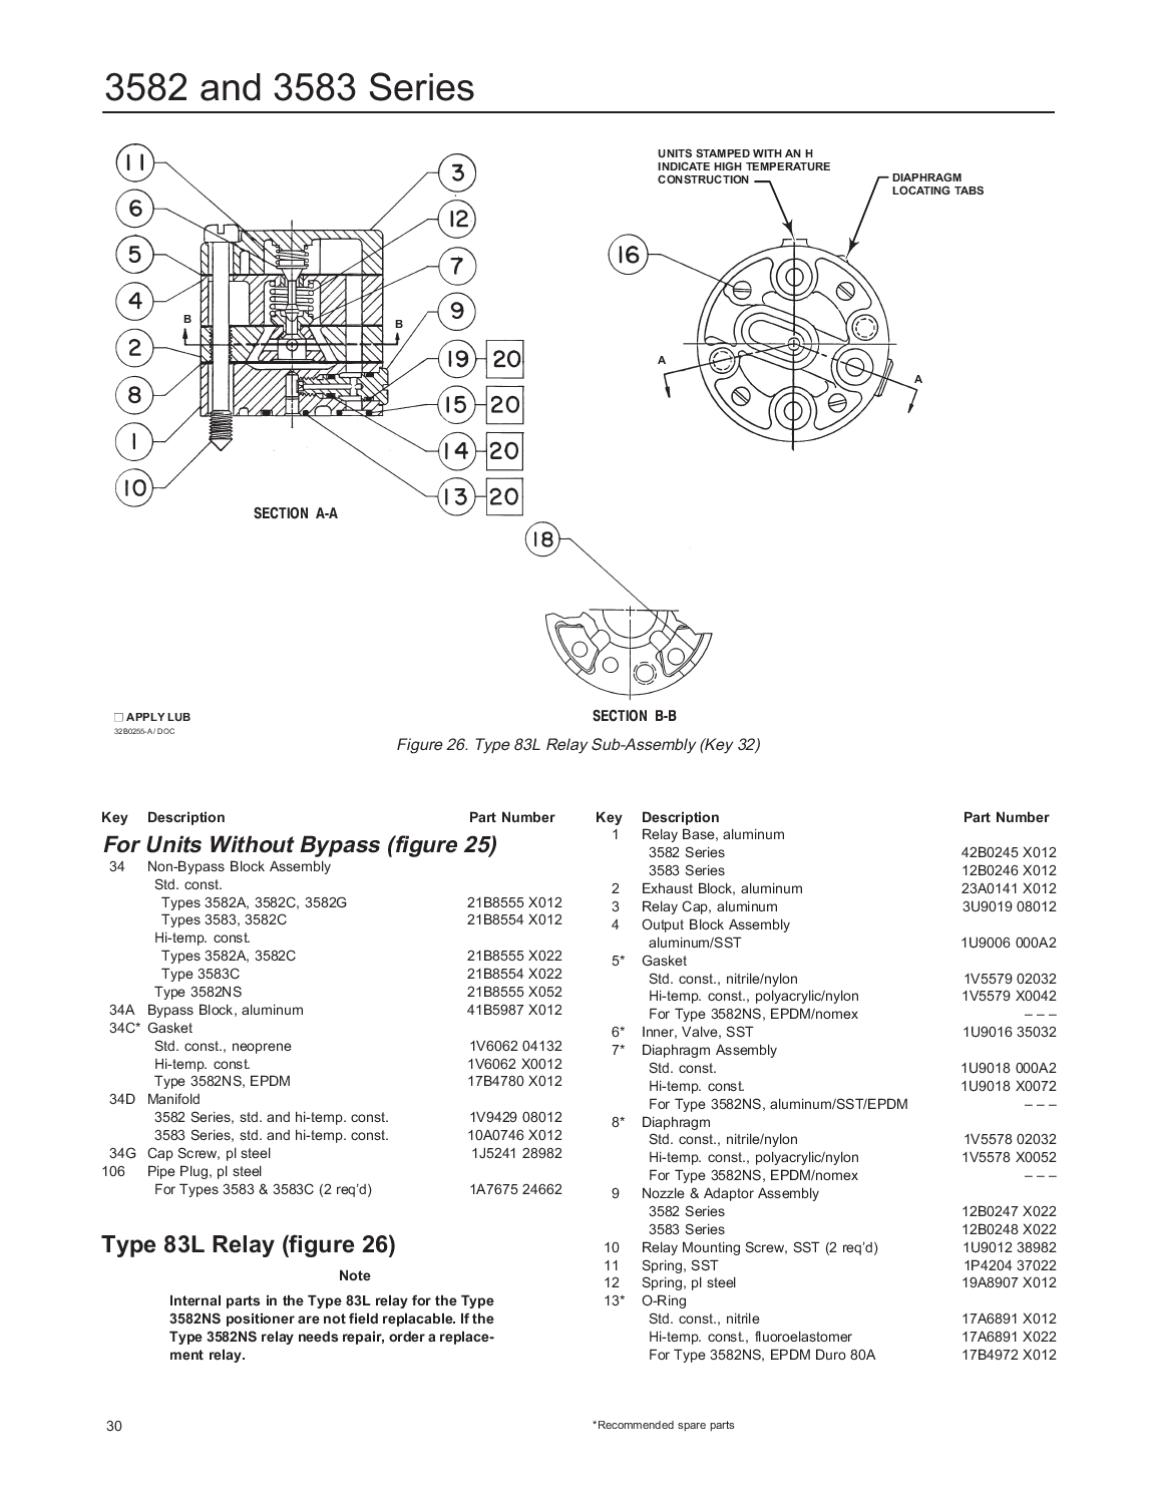 3582 Positioner Instruction Manual June 1998 by RMC